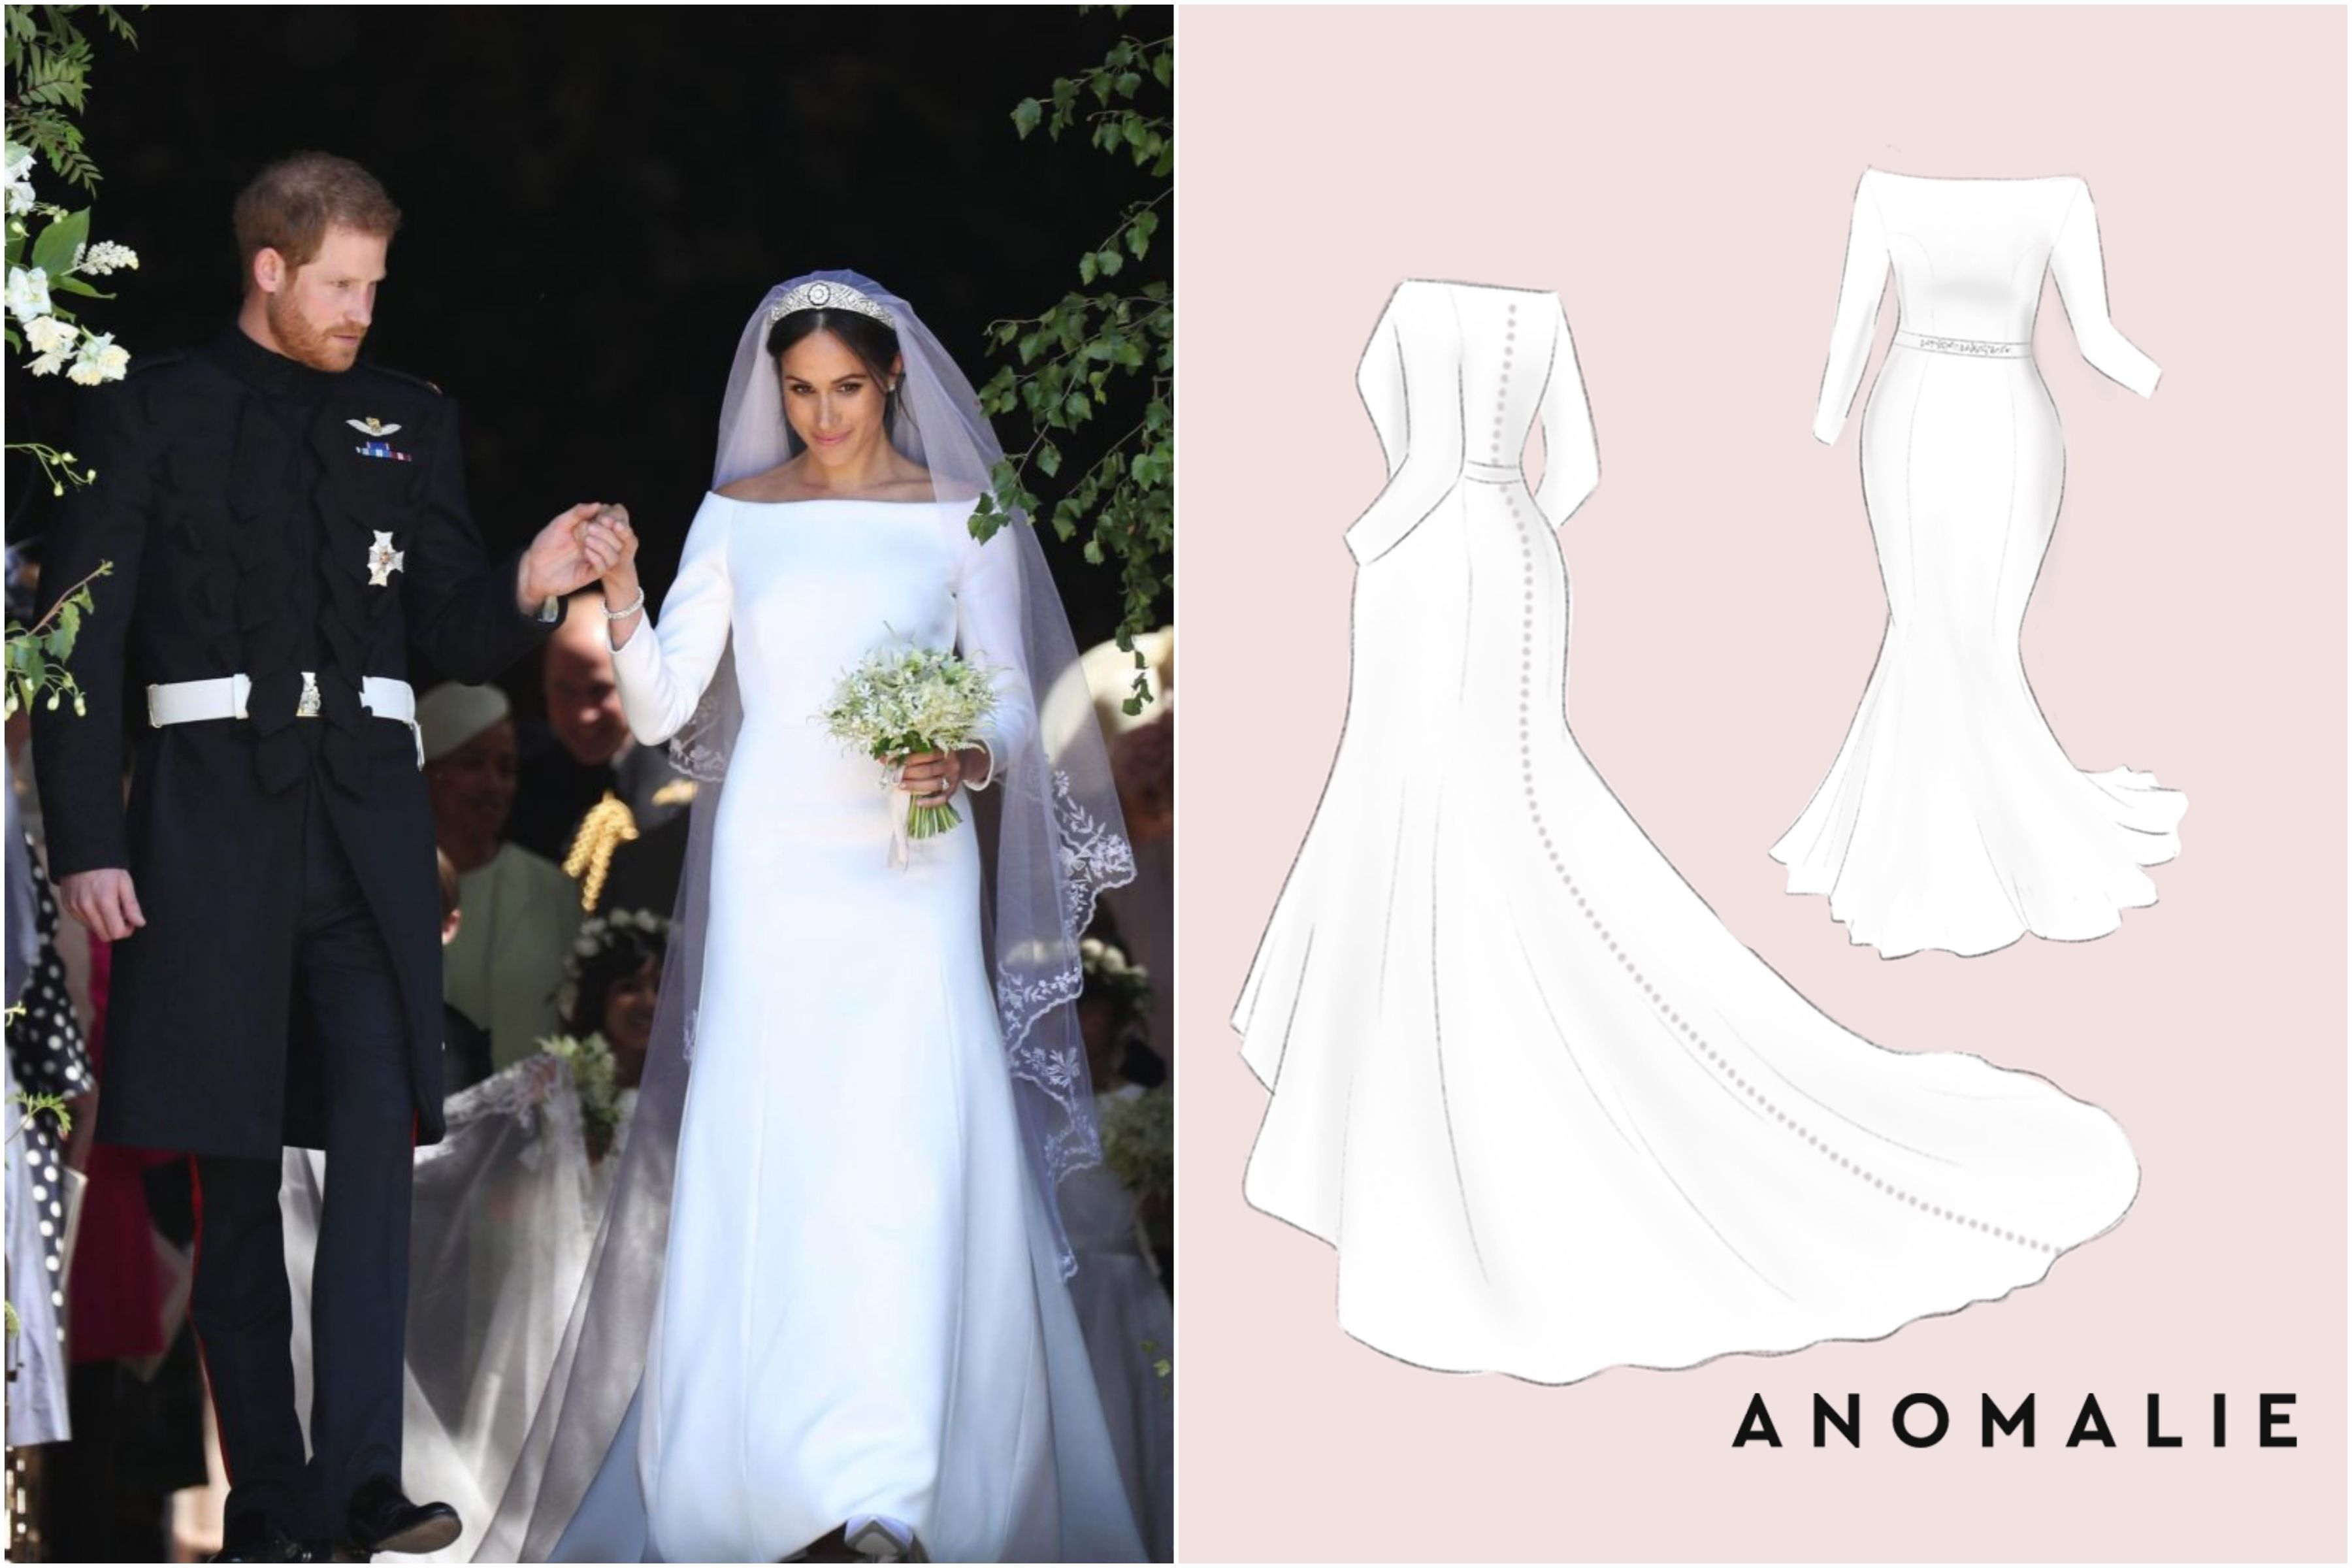 Customize Meghan Markle S Dress For Any Body Type Without